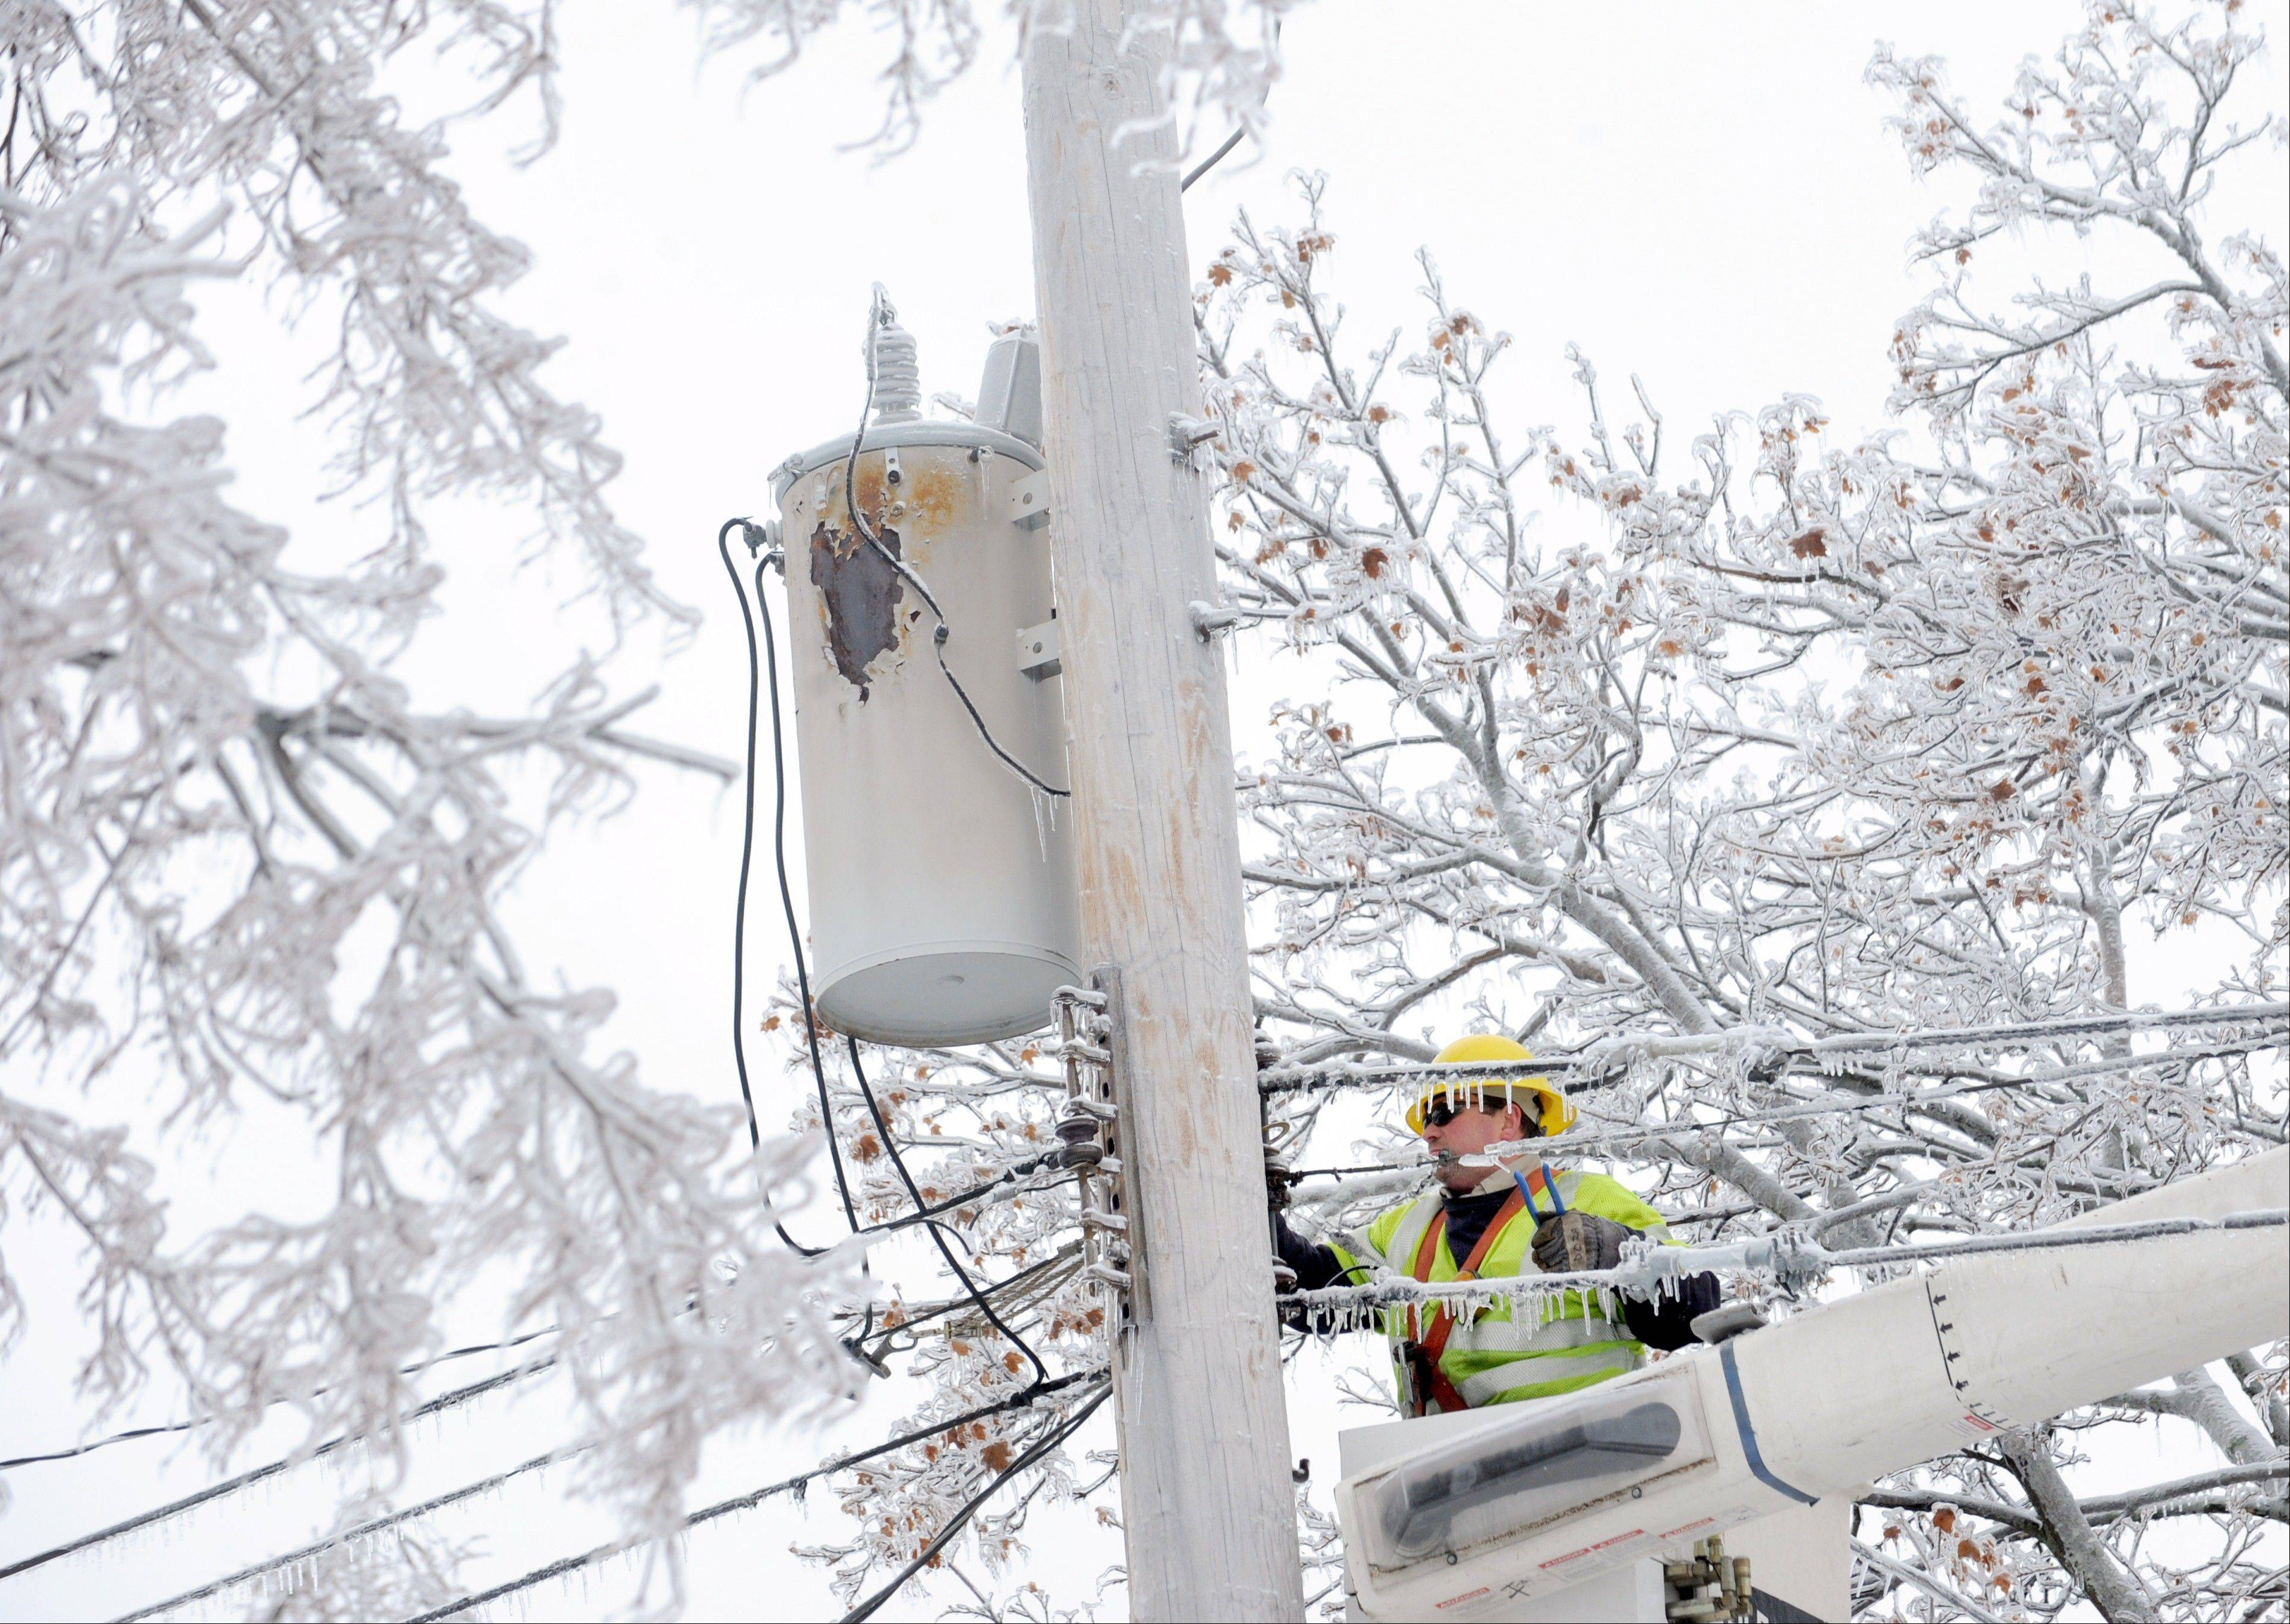 Dave Dora, a lineman from Grand Haven Board of Light and Power, works Monday on connecting fallen wires on Macon Avenue in Lansing, Mich.